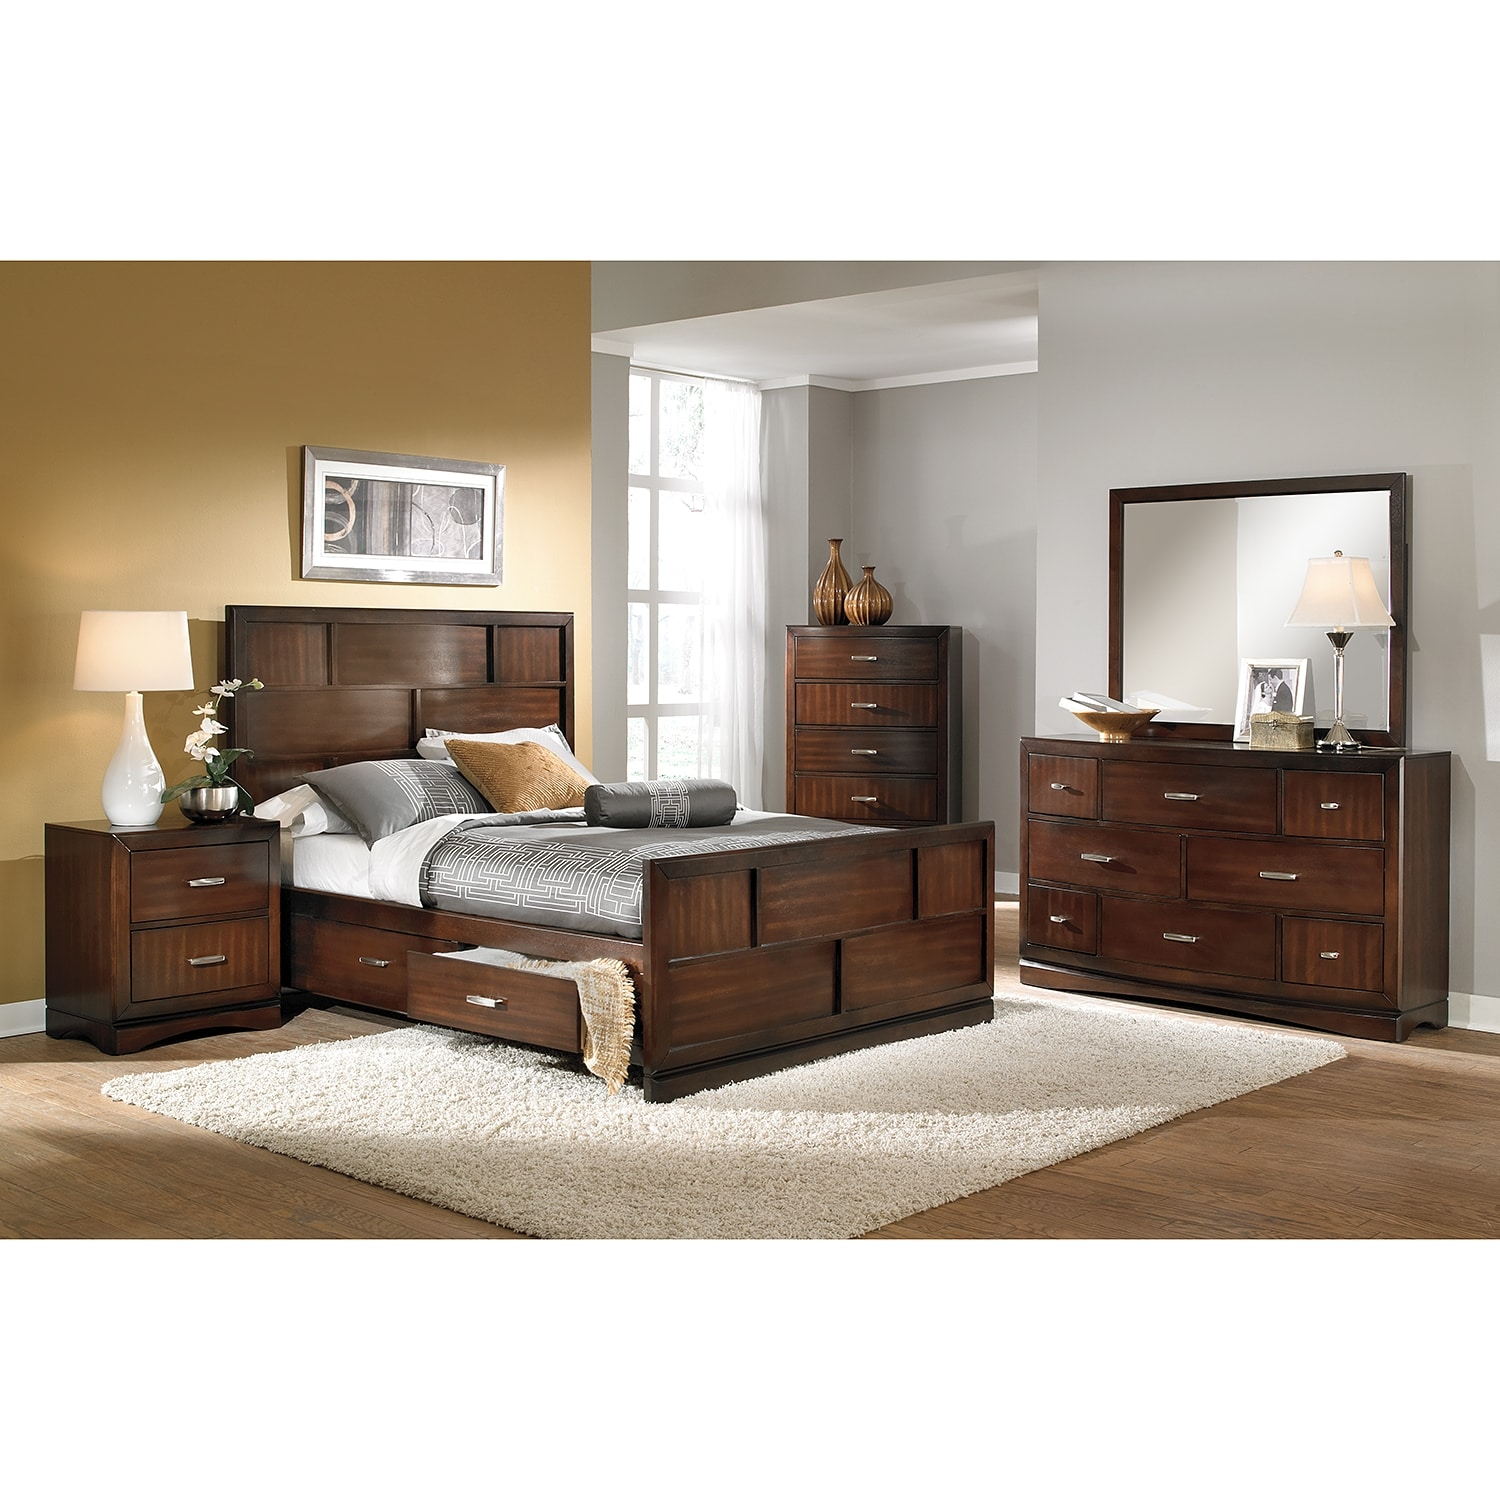 Good Furniture Stores Toronto Toronto Queen Storage Bed Pecan American Signature